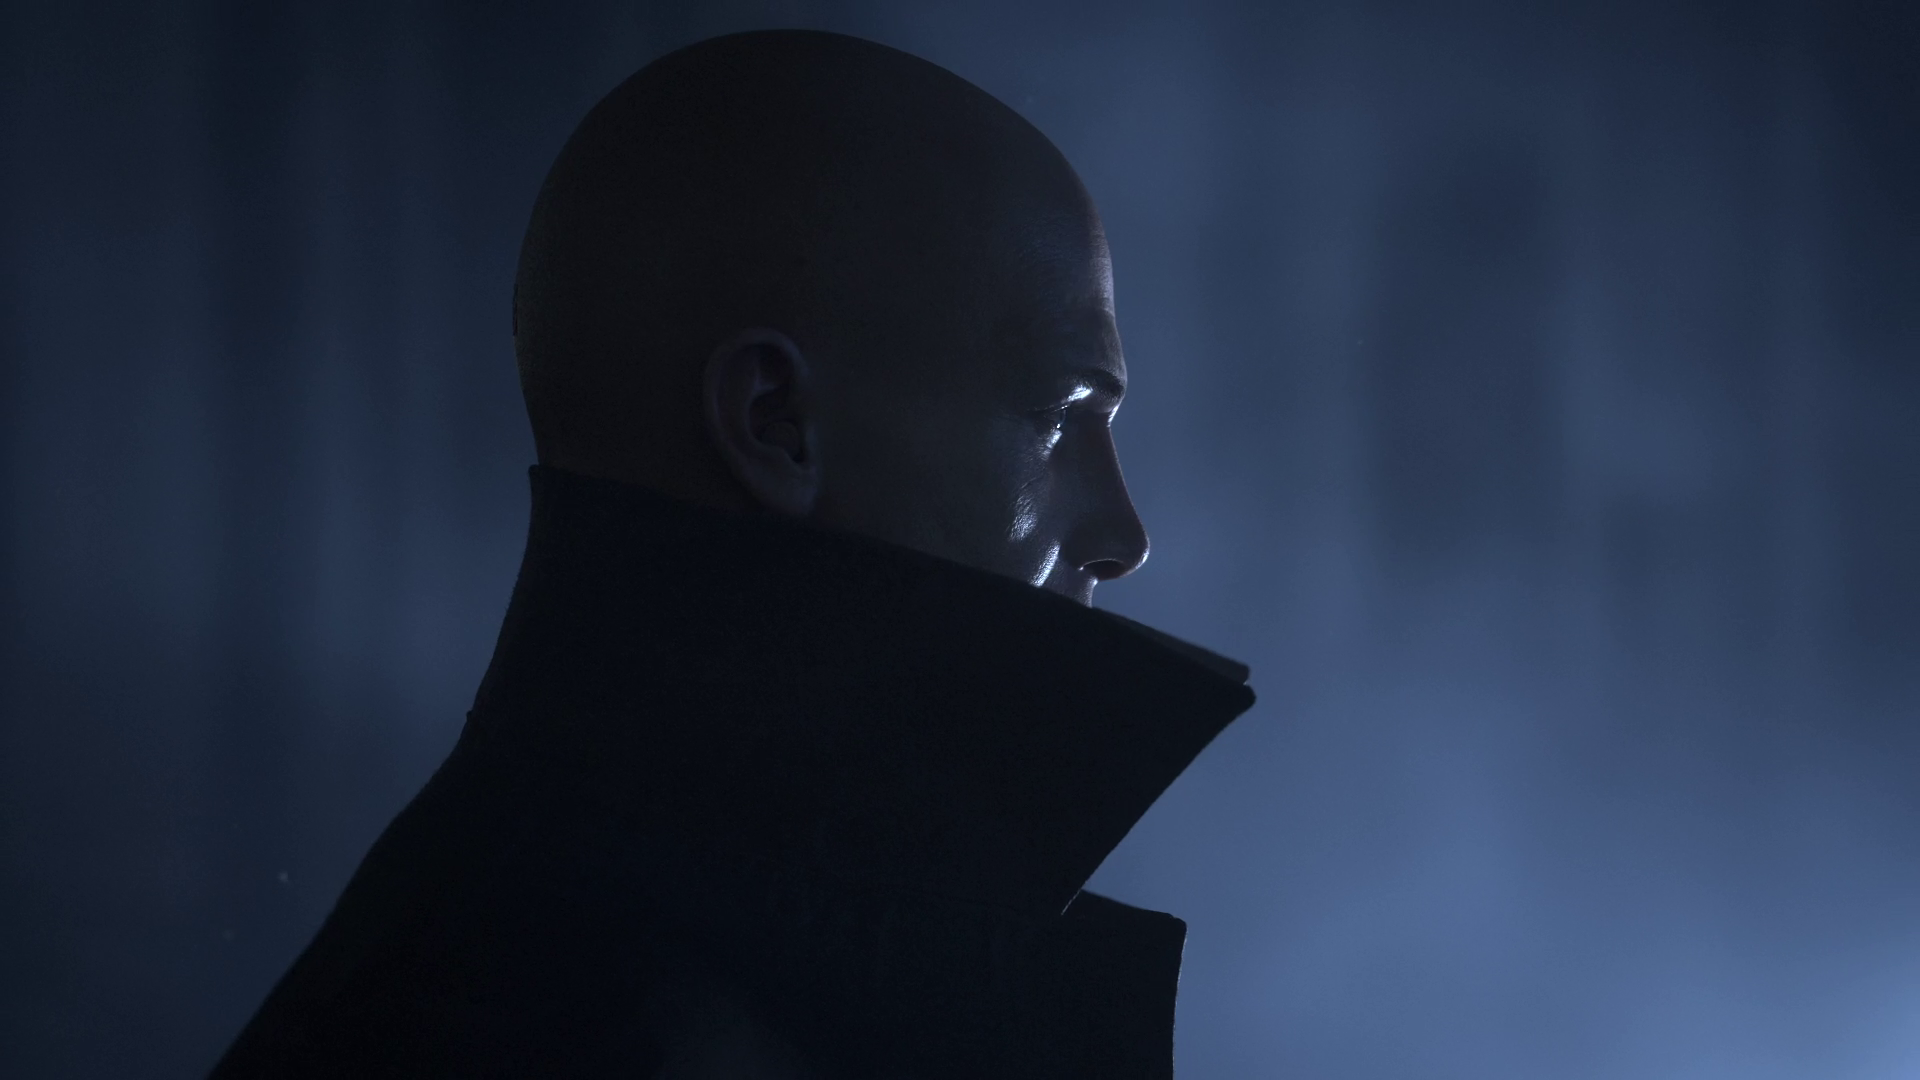 Hitman 3 - Agent 47 in profile, wearing a high collared coat. He's backed by an ominous looking blue light.